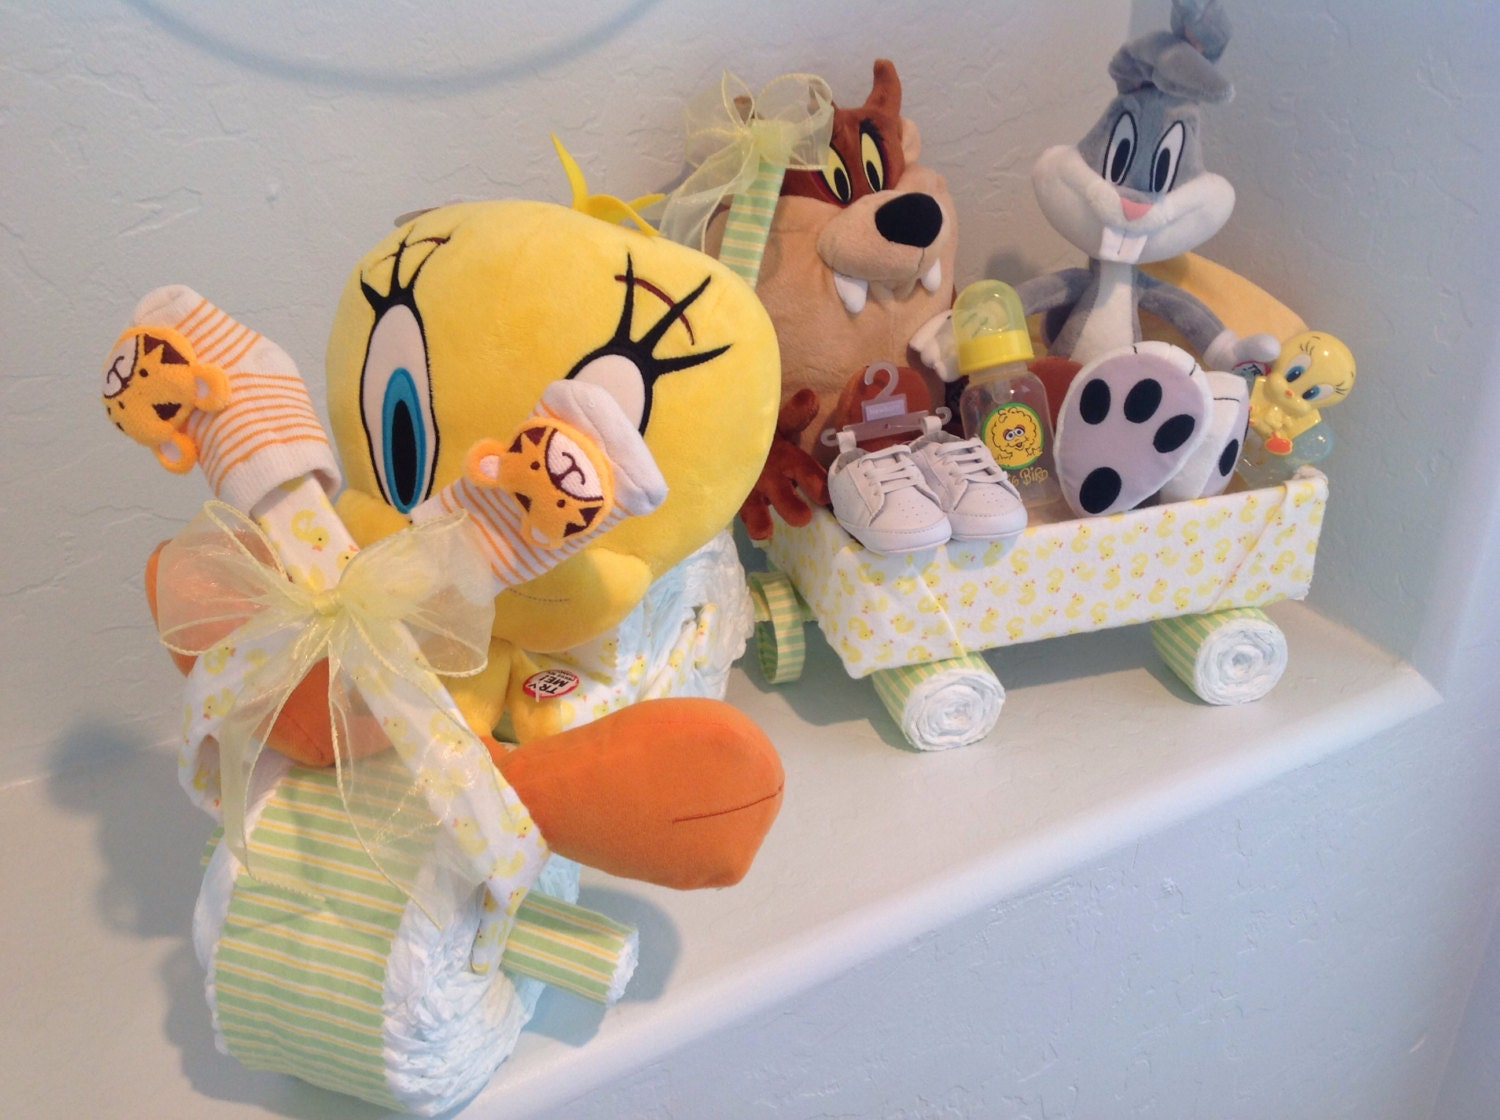 Baby Gift Basket Diapers : Handmade baby diaper gift basket cakes and centerpiece